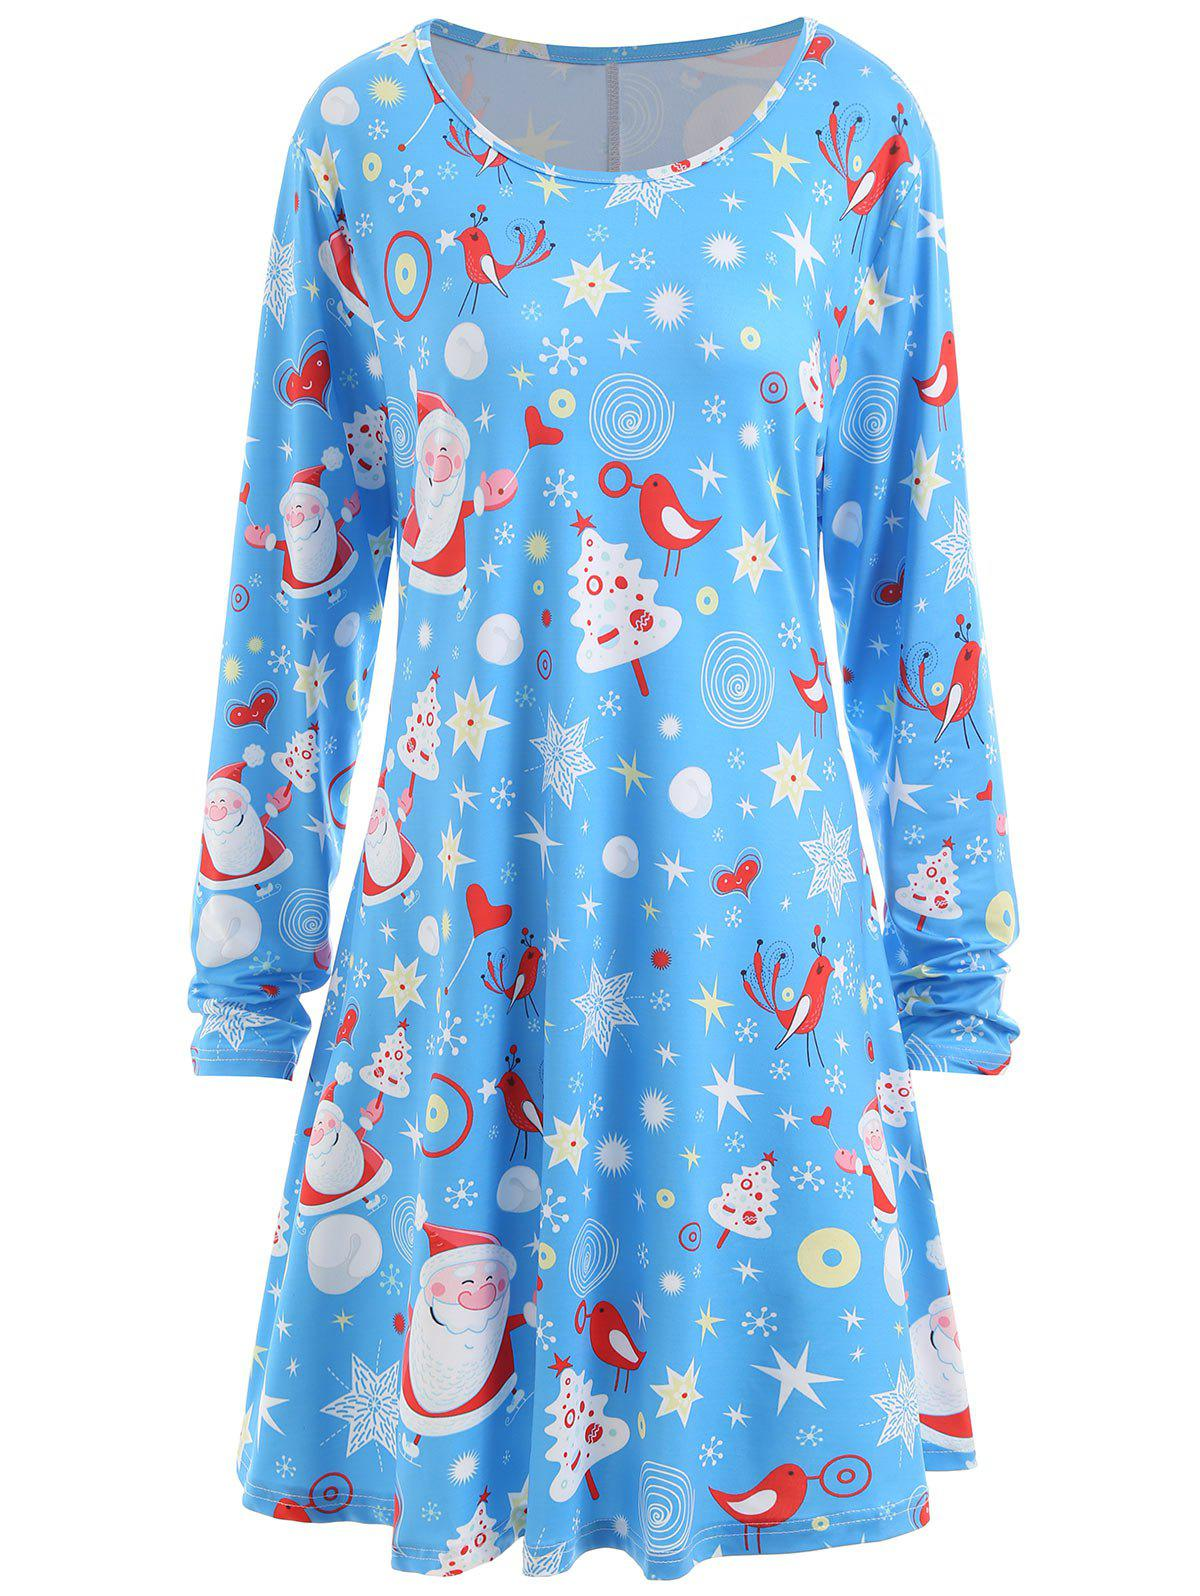 Buy Christmas Santa Claus Star Heart Plus Size Tunic Dress